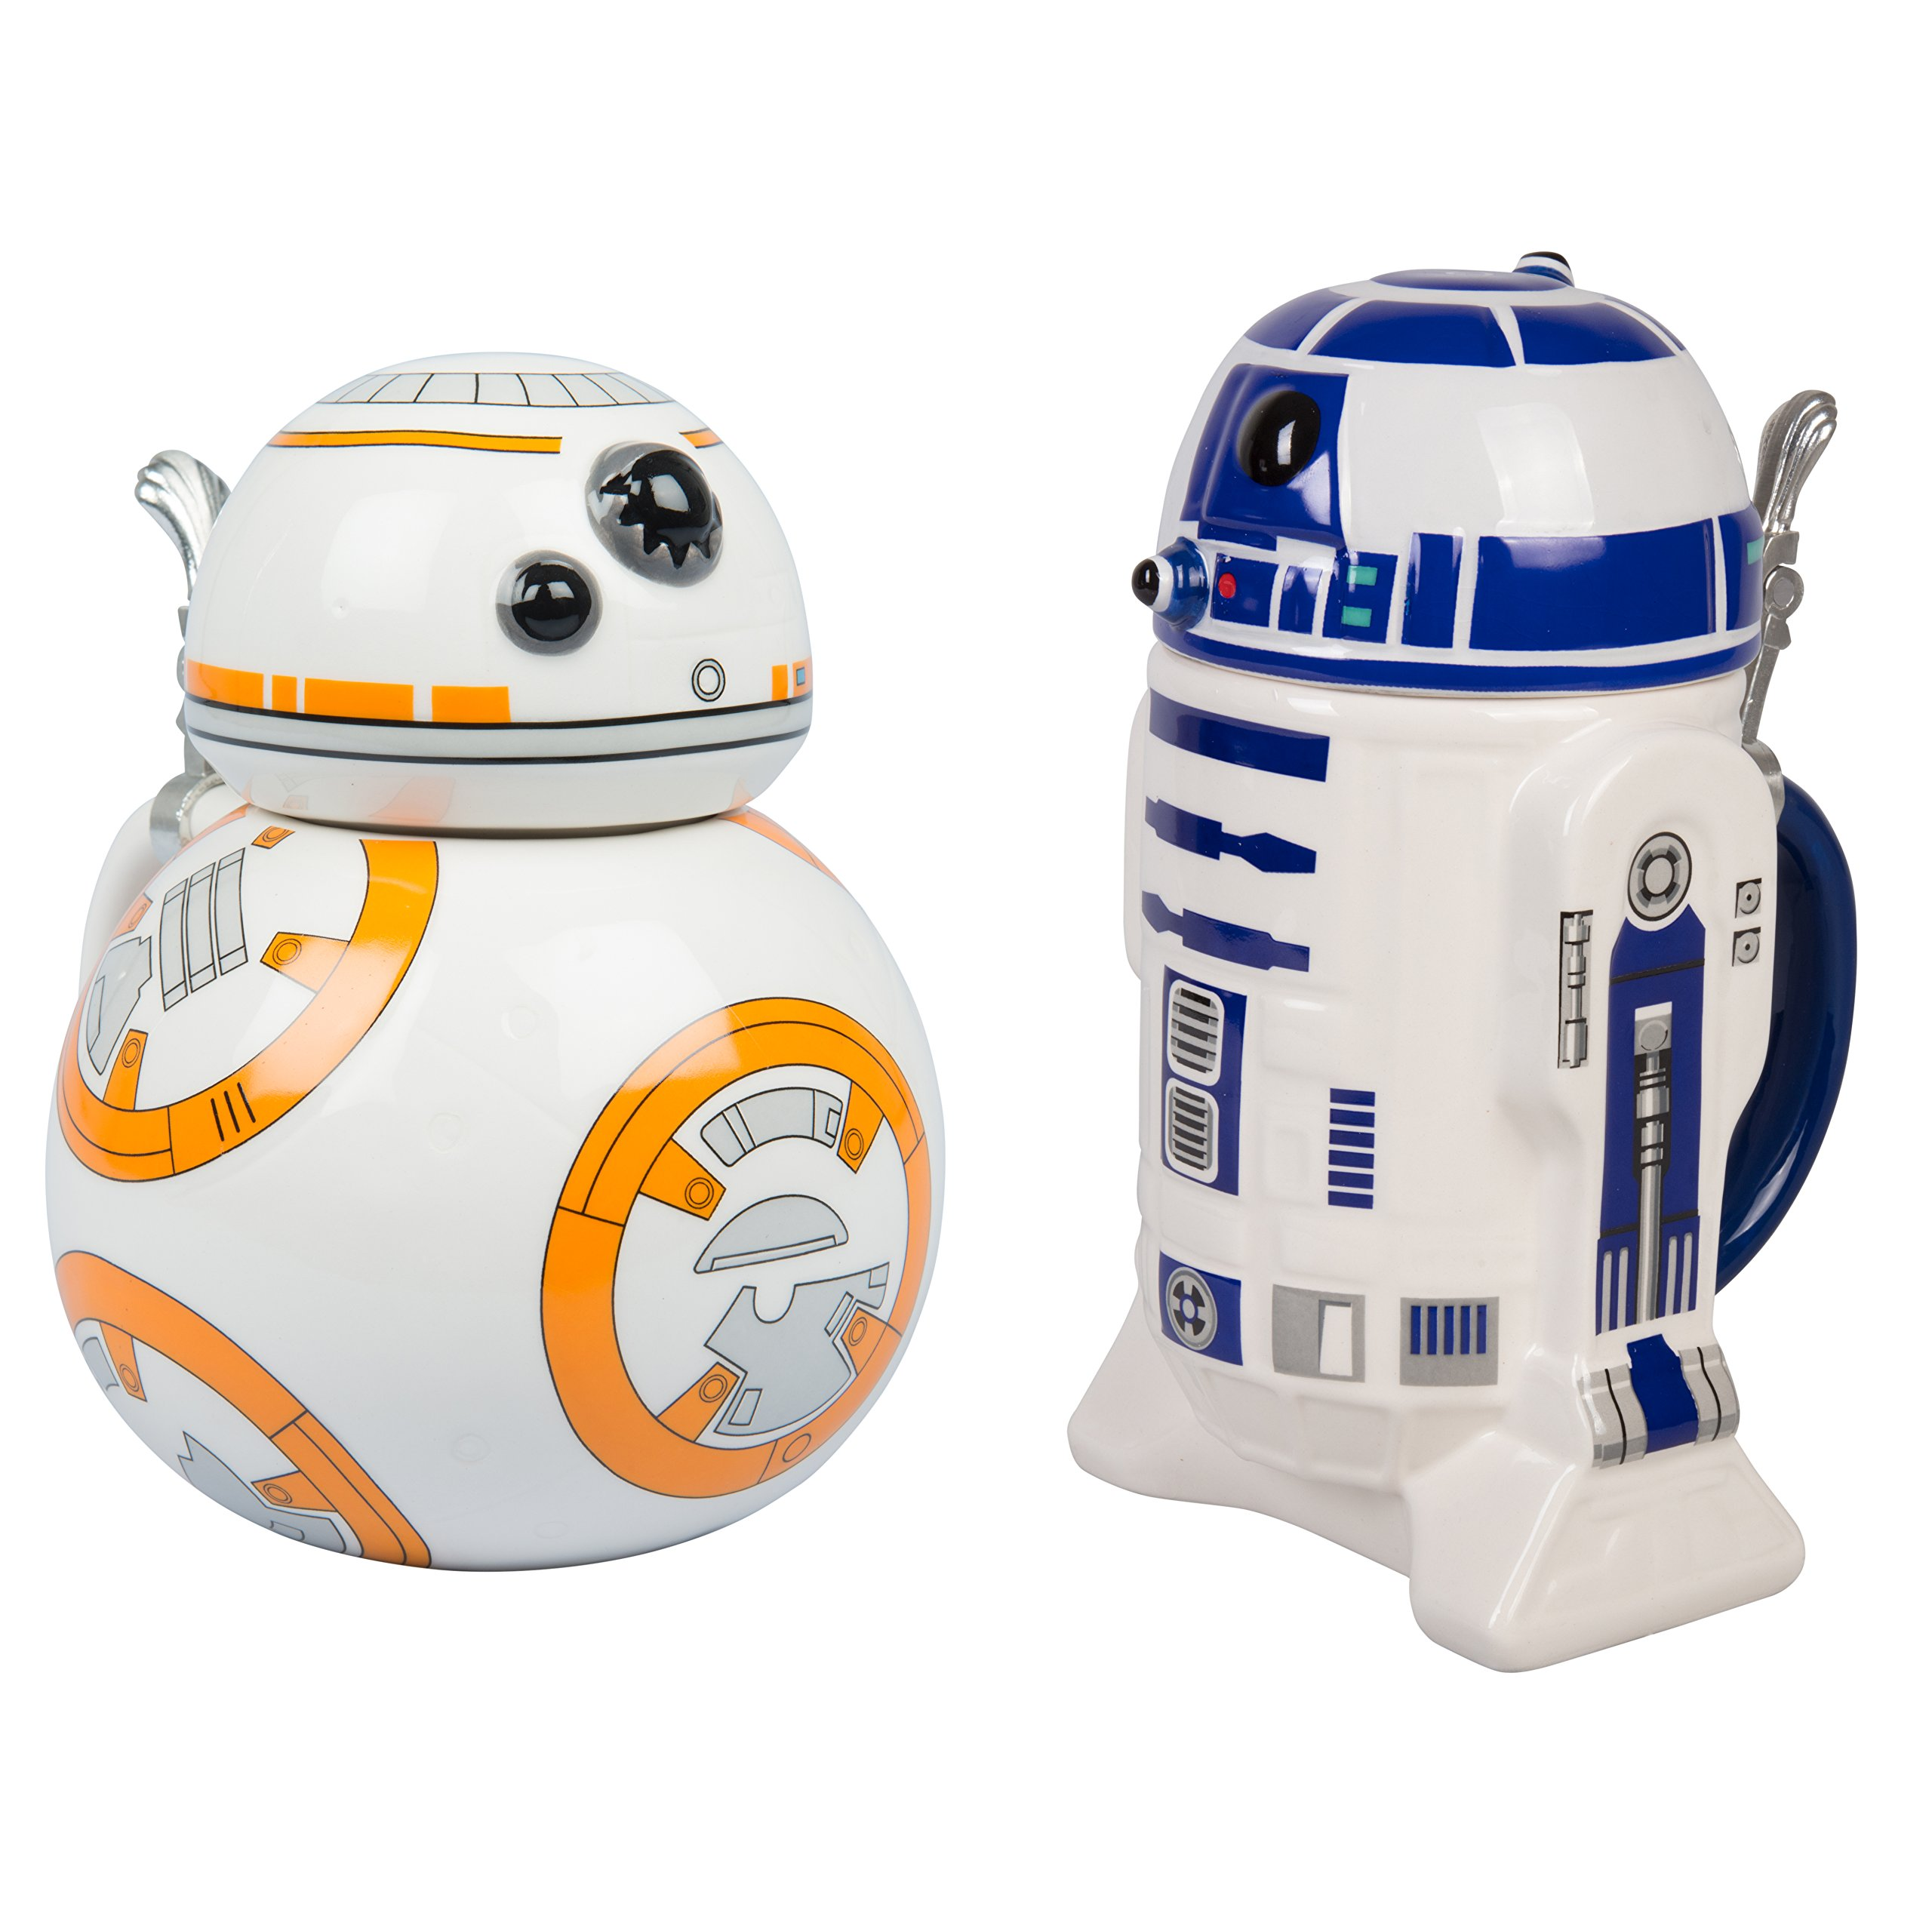 Star Wars BB-8 and R2-D2 Ceramic Beer Steins with Hinged Lids - Set of 2-32 oz